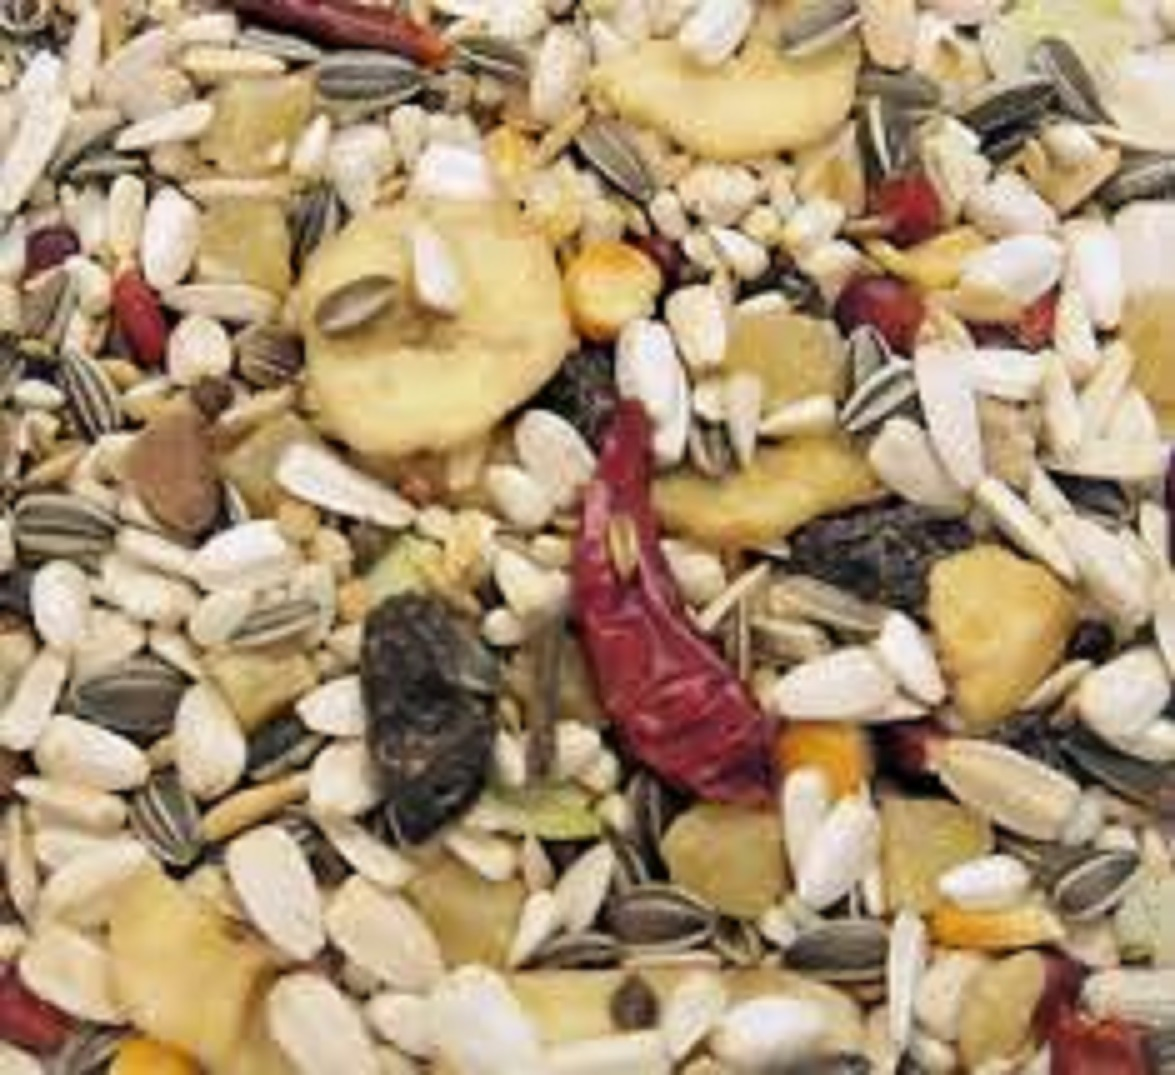 15 K TROPICAL PARROT BIRD FRUIT SEED AND NUTS MIX - Paw Prints